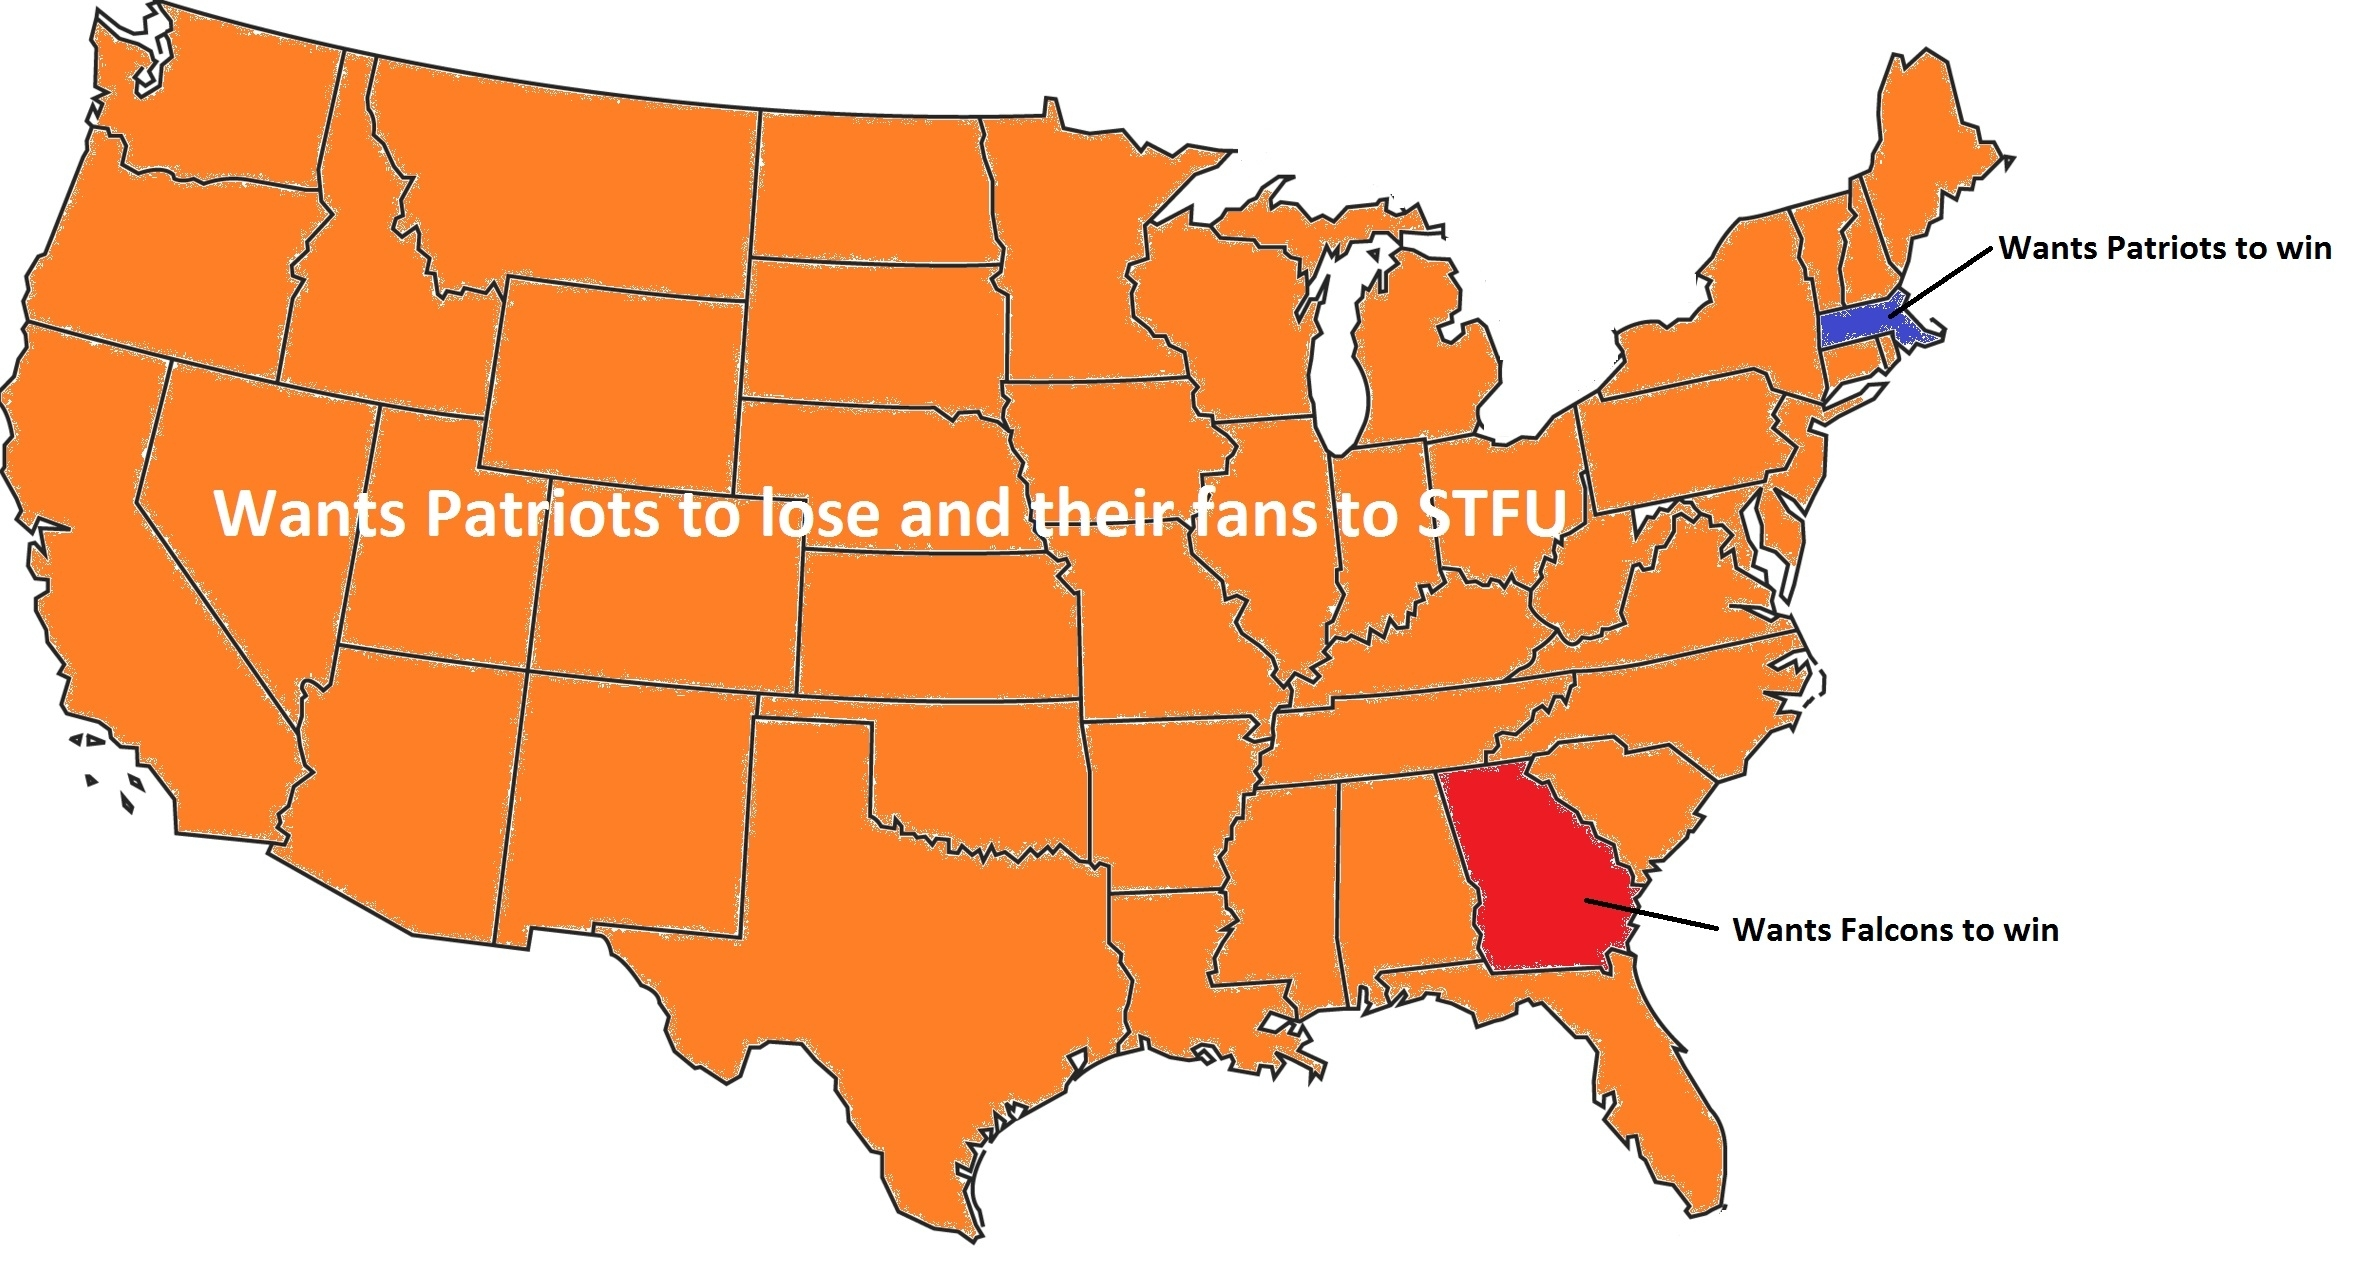 Superbowl Map - Imgur pertaining to Map Of Patriots Fans For Super Bowl